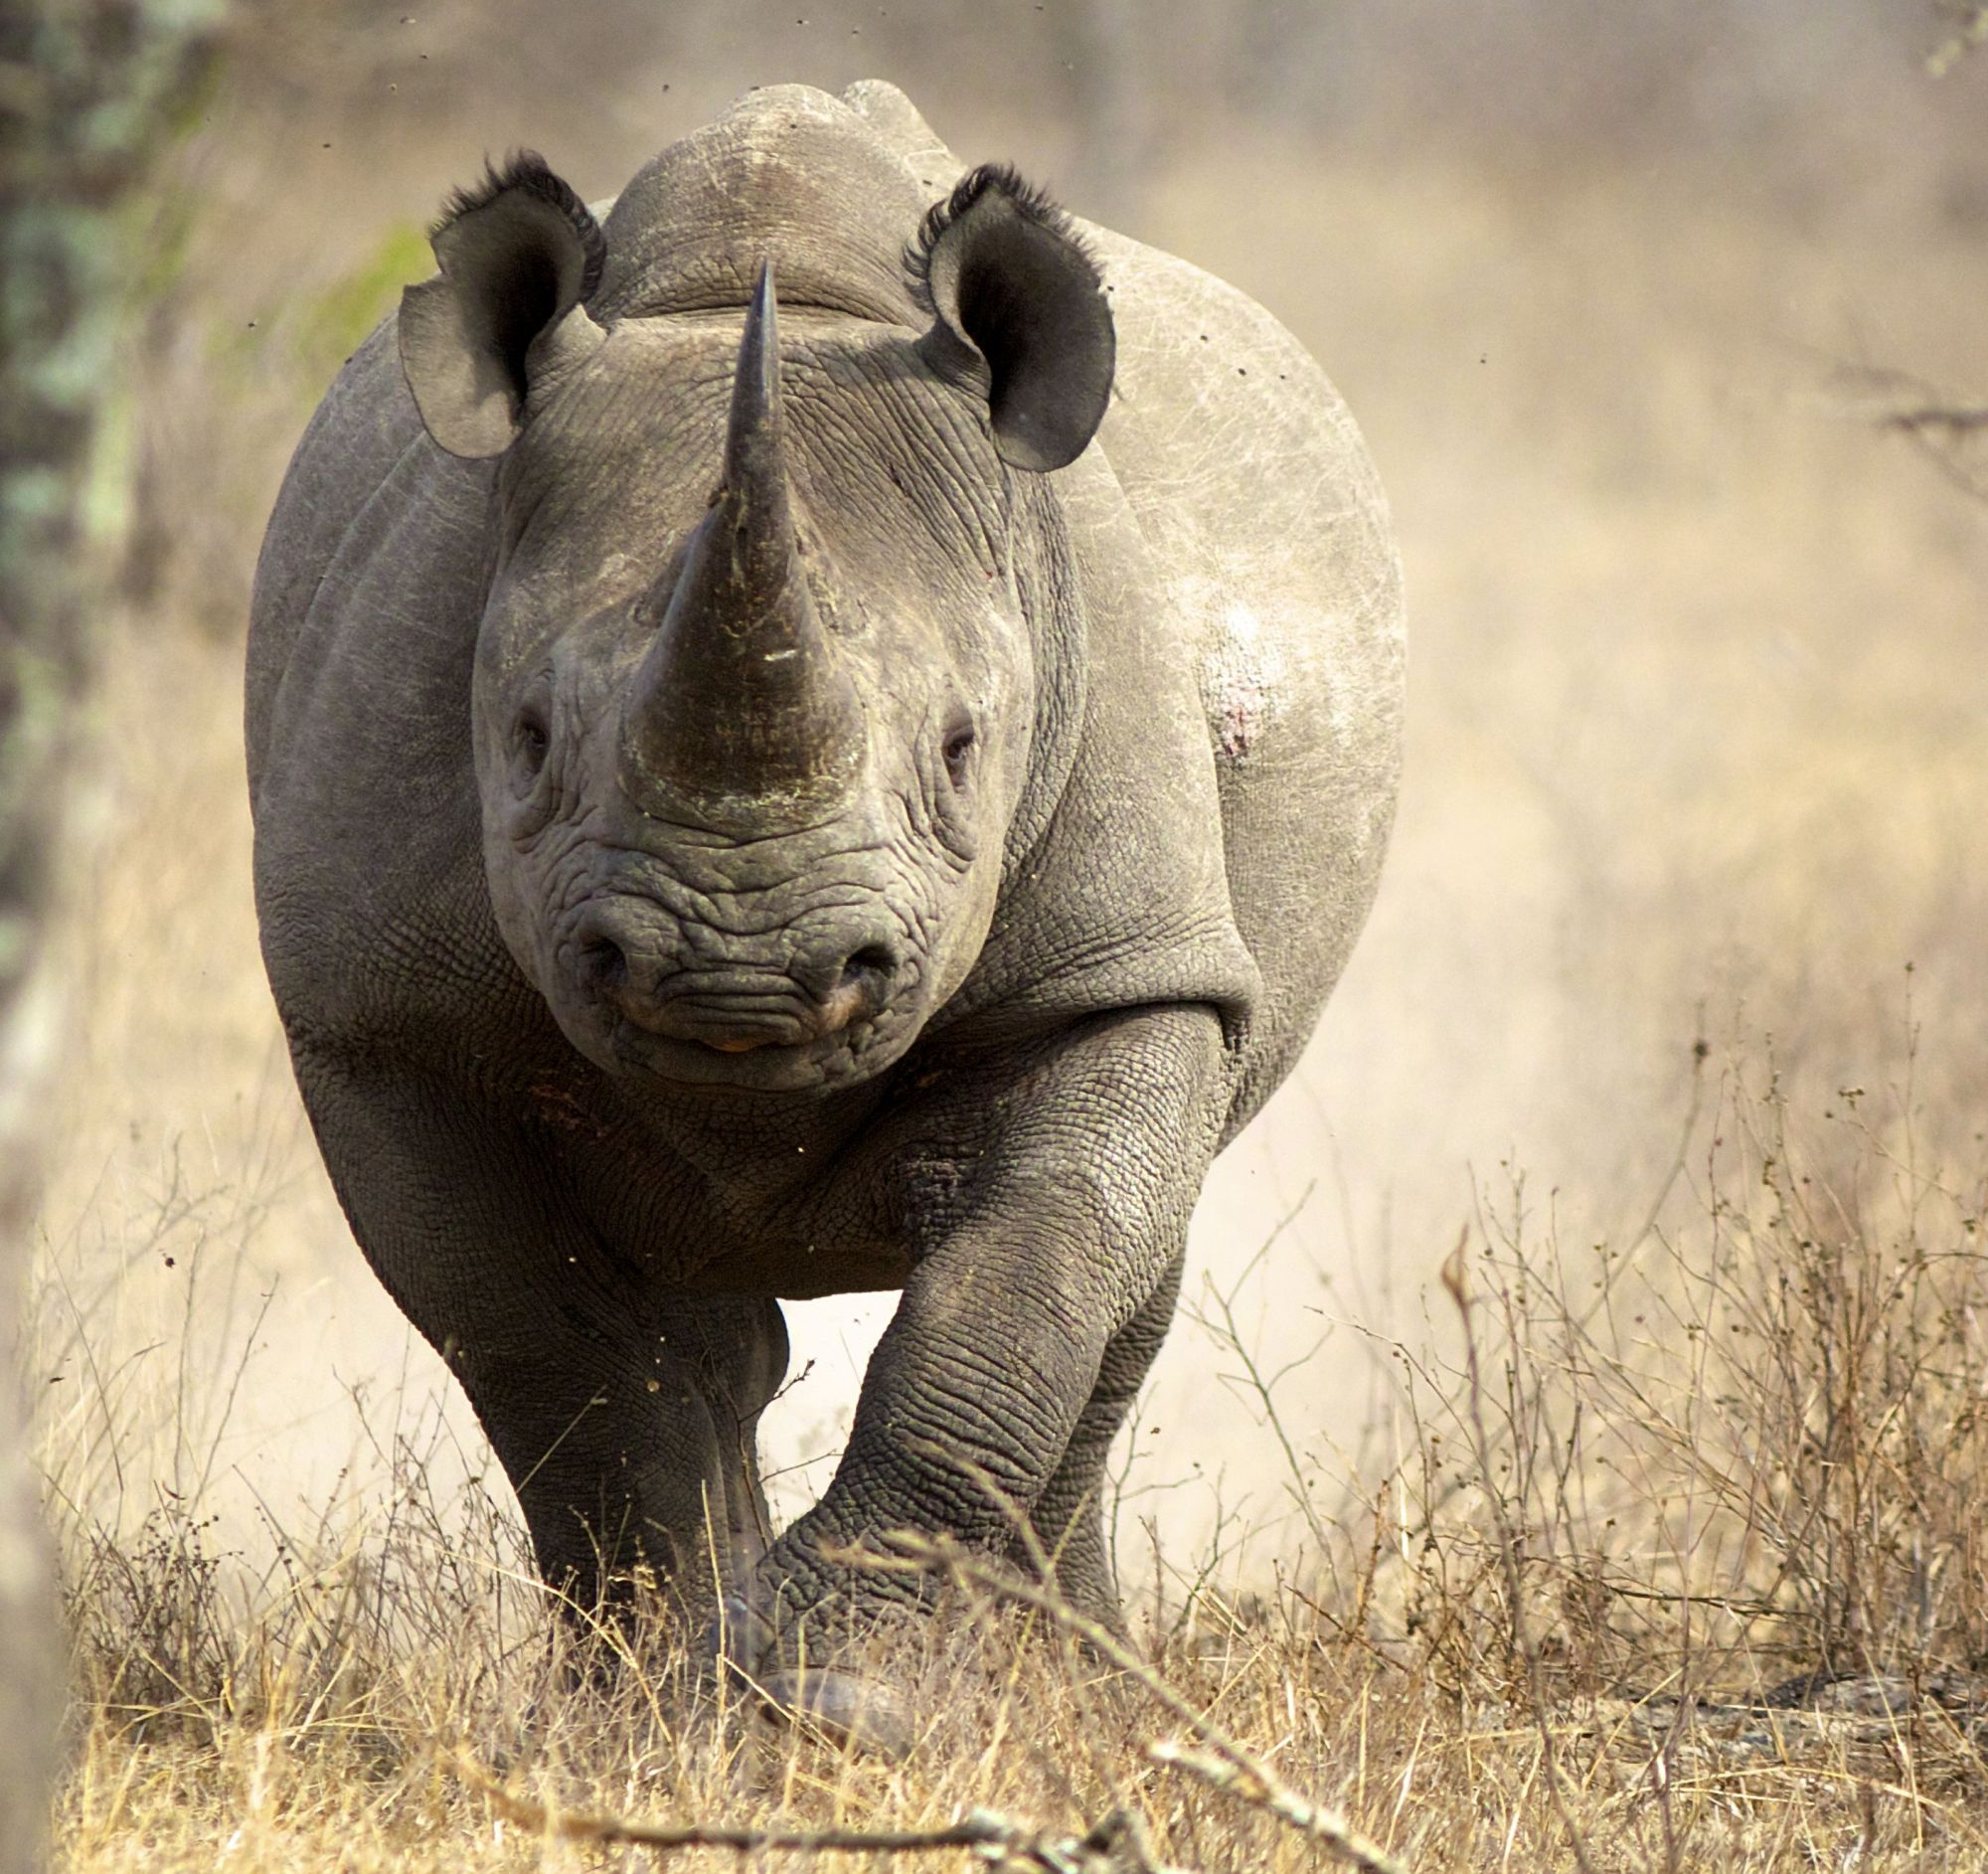 http://www.dreamstime.com/stock-image-black-rhino-image21968301